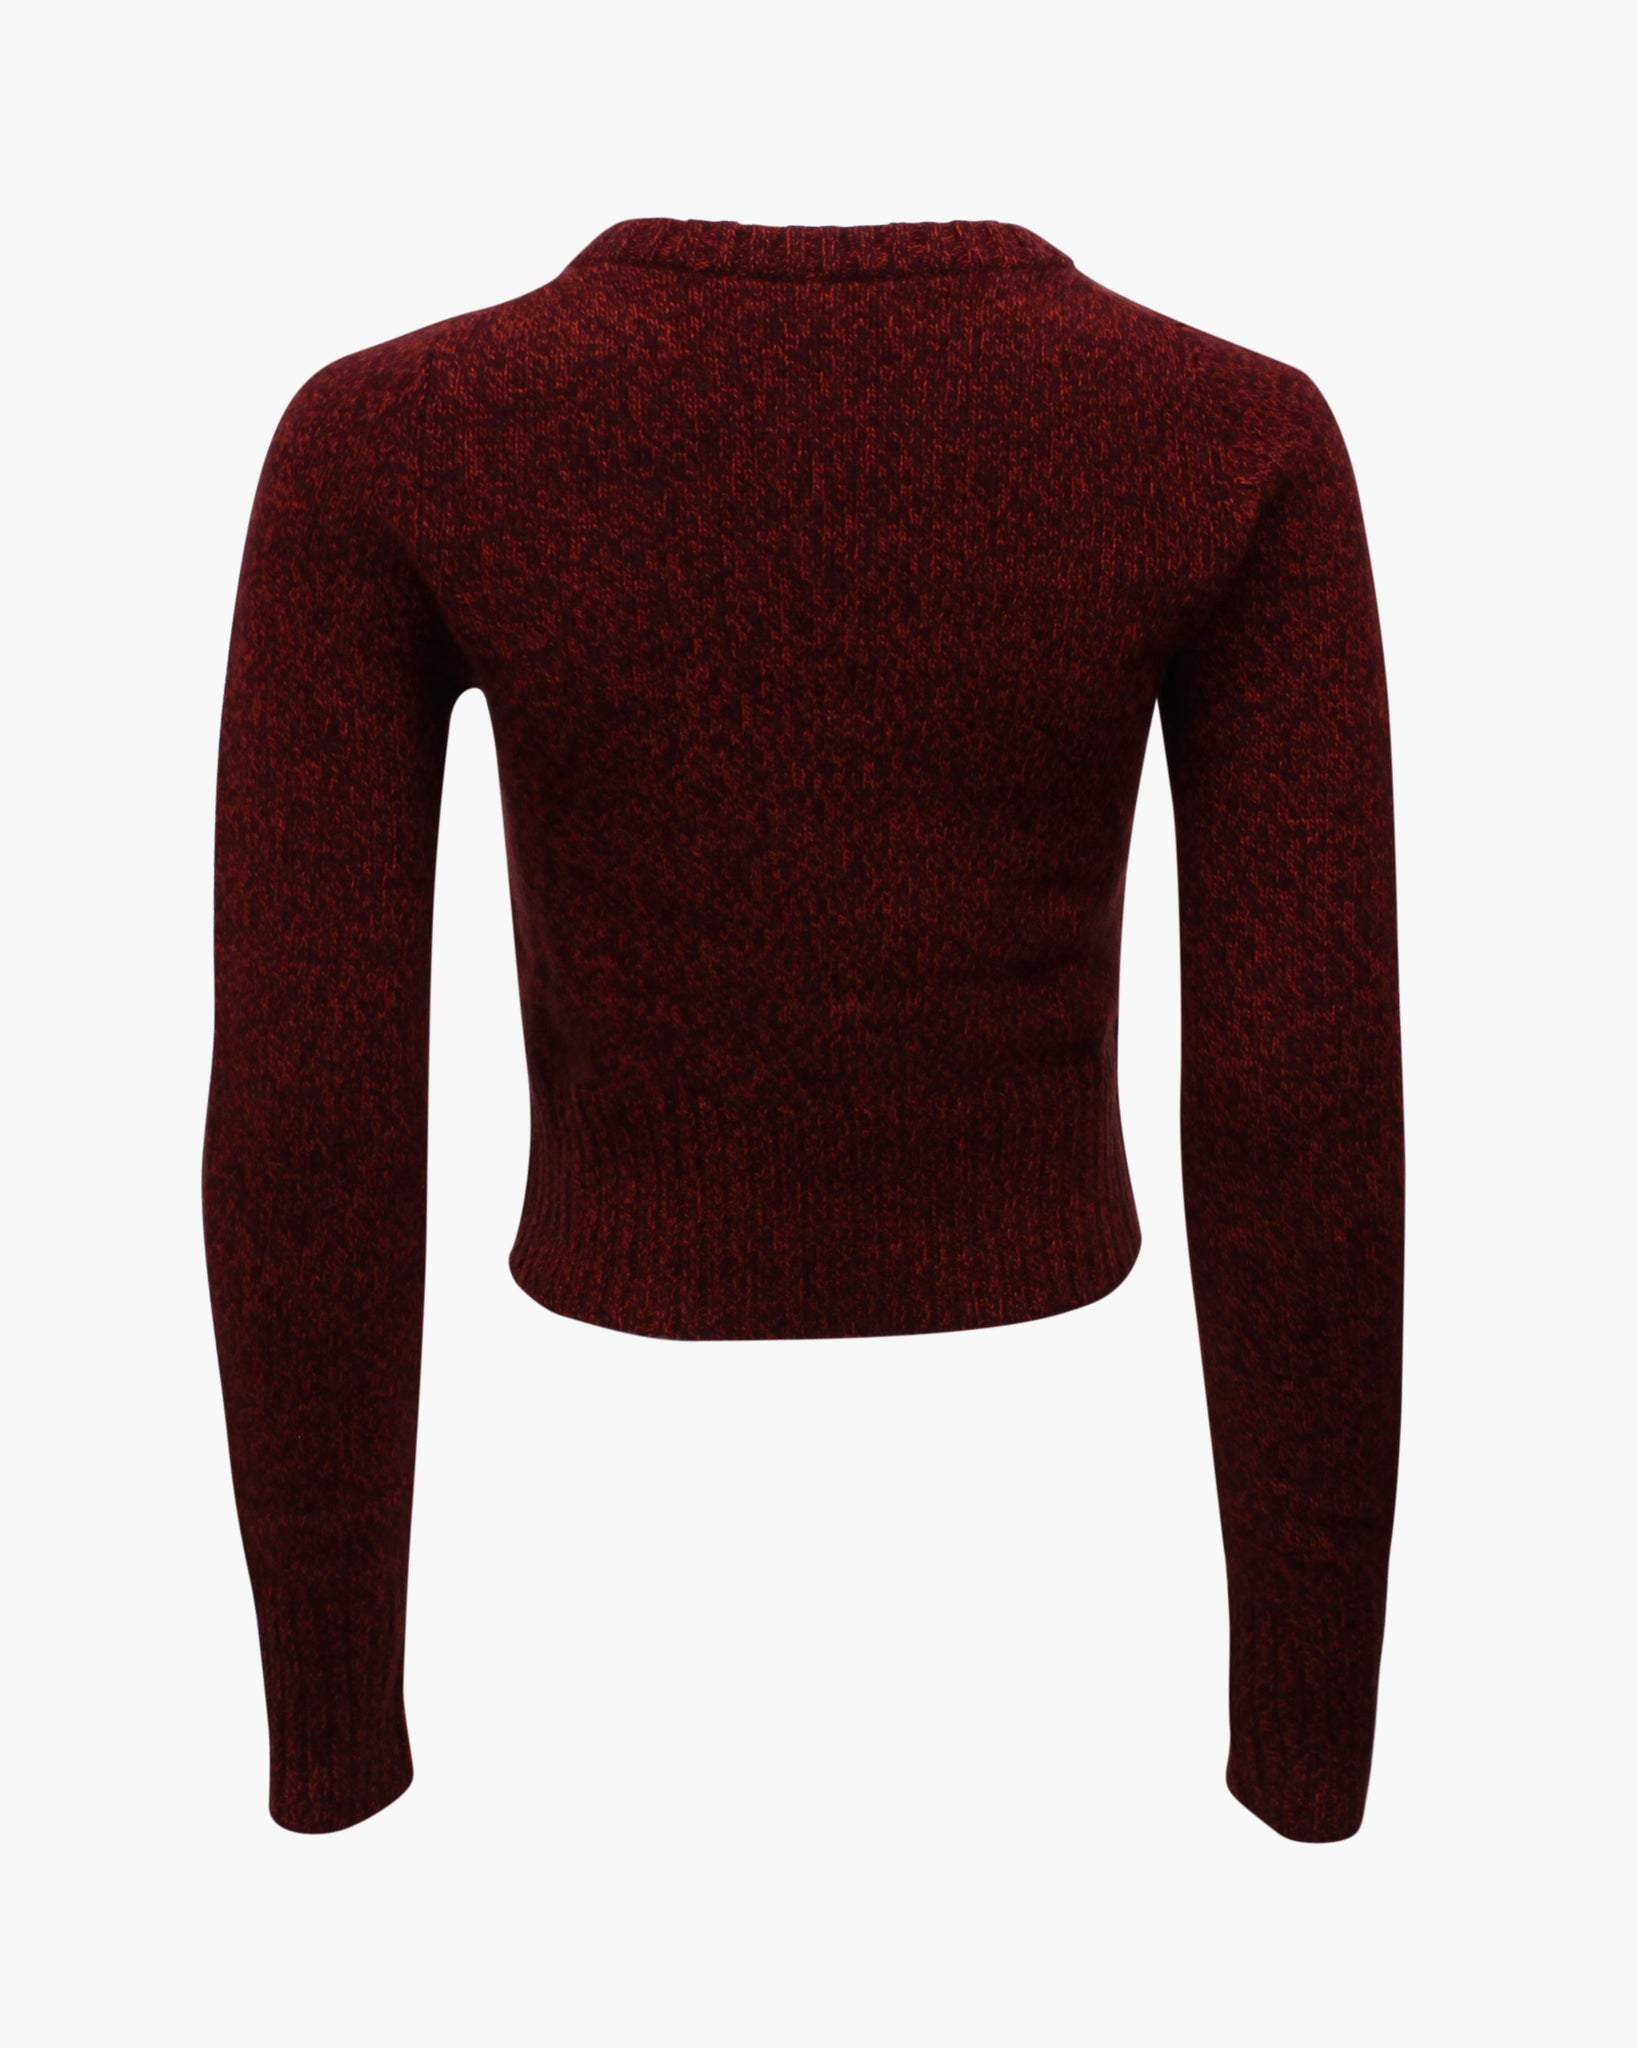 Cody Sweater Regenerated Cashmere Burgundy Melange